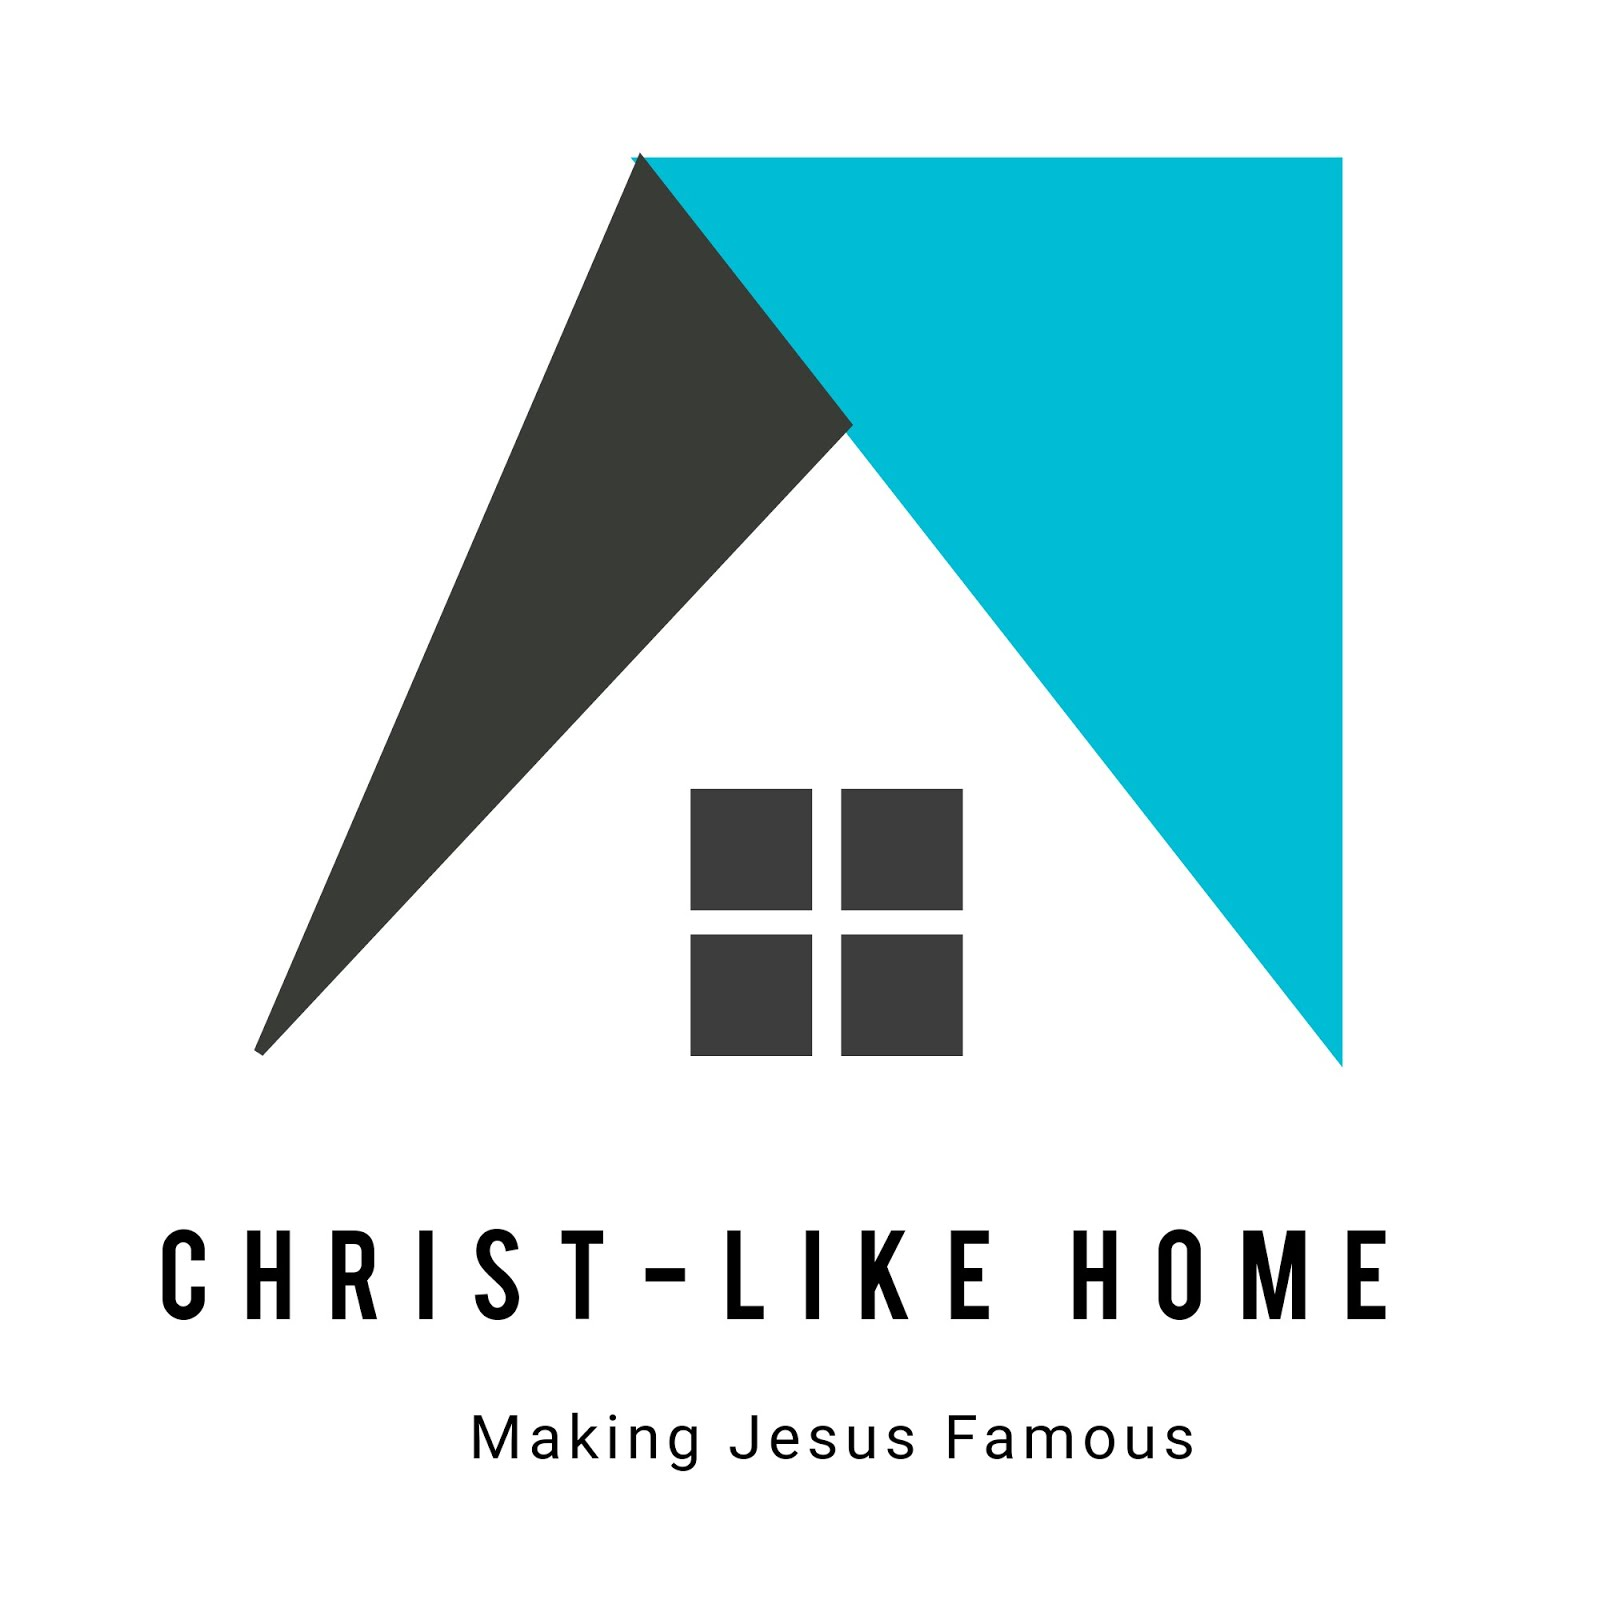 CHRIST-LIKE HOME